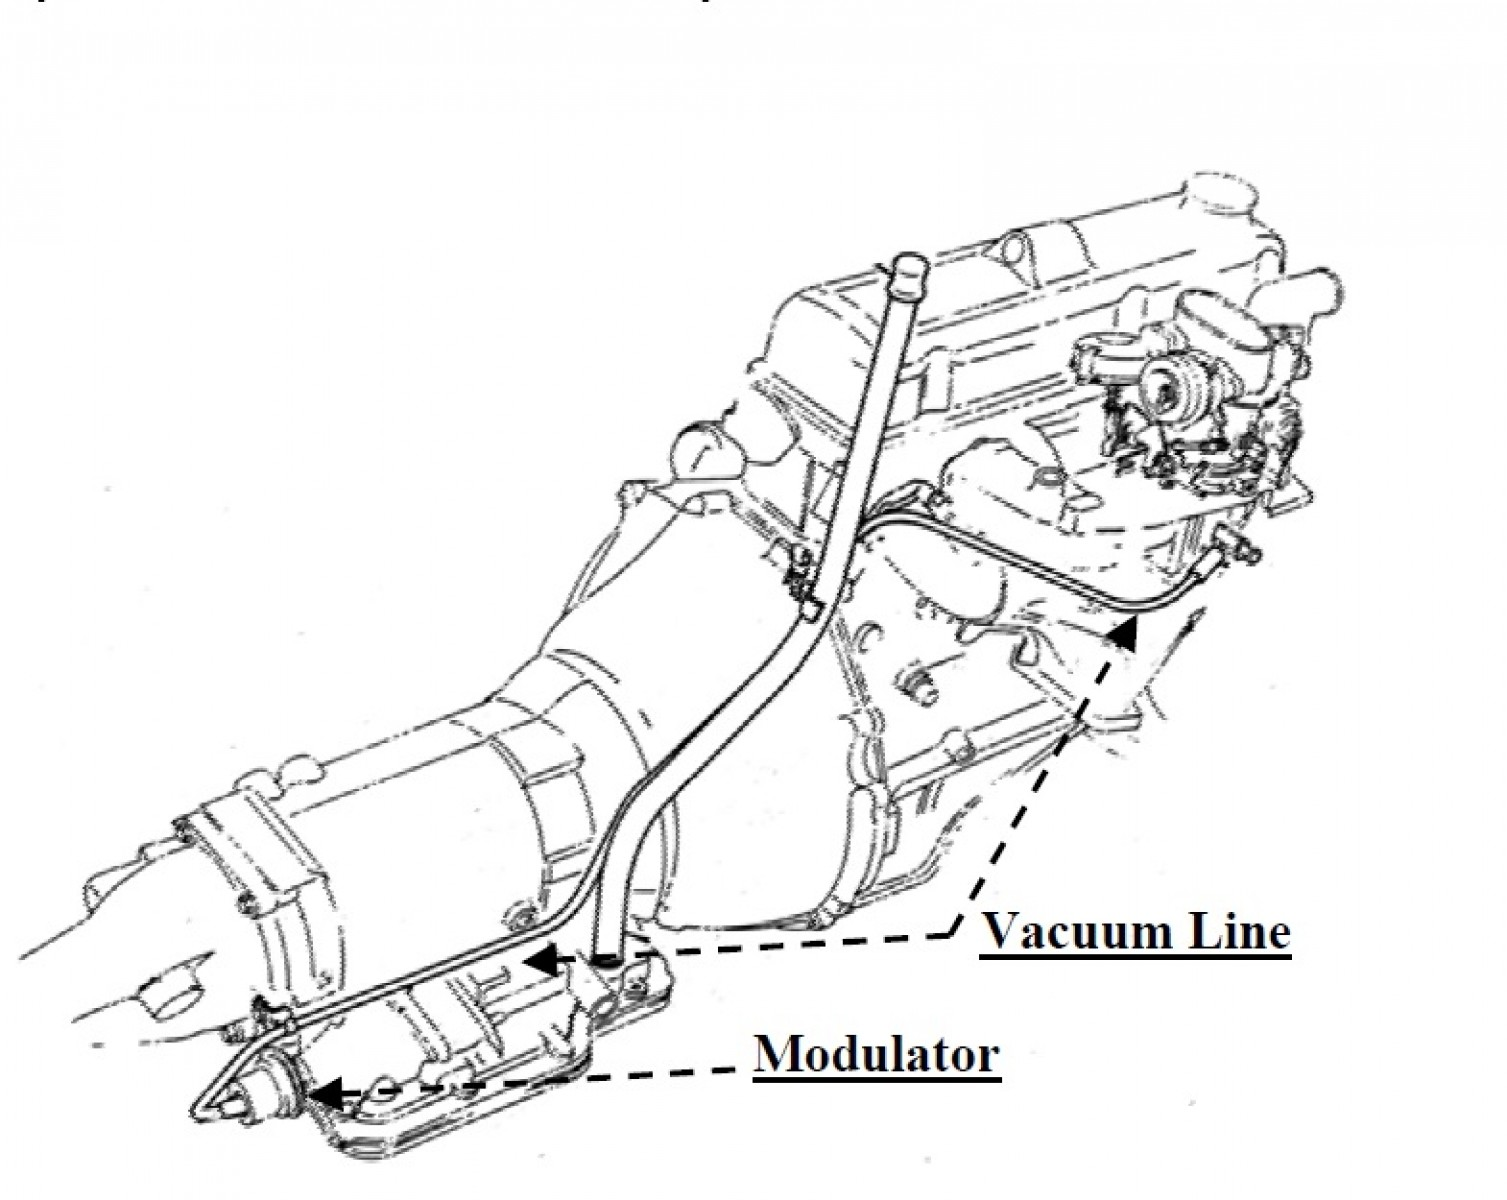 Changeing gear shift assembly 1996 geo metro on cluster diagram 2003 hummer h2 html